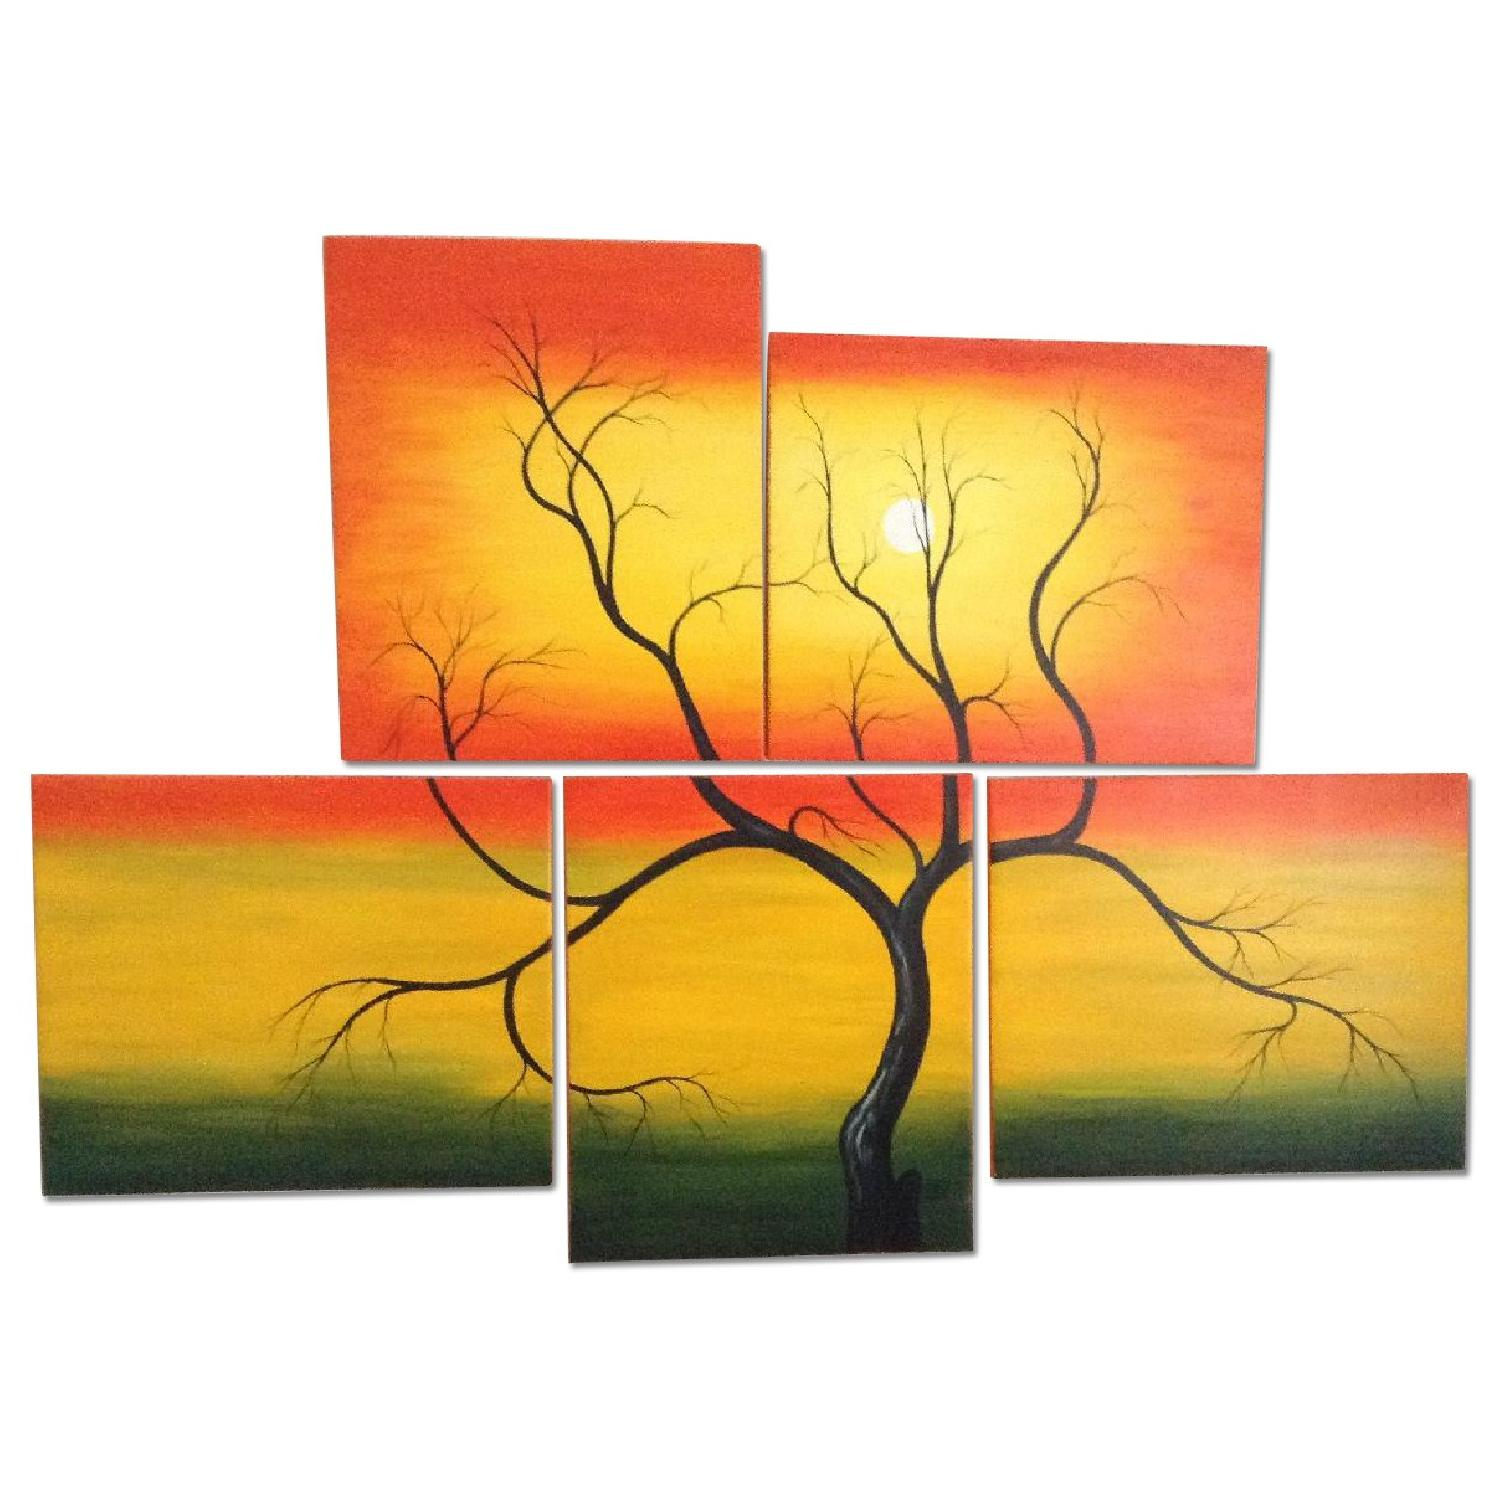 5 Piece Painting - image-0